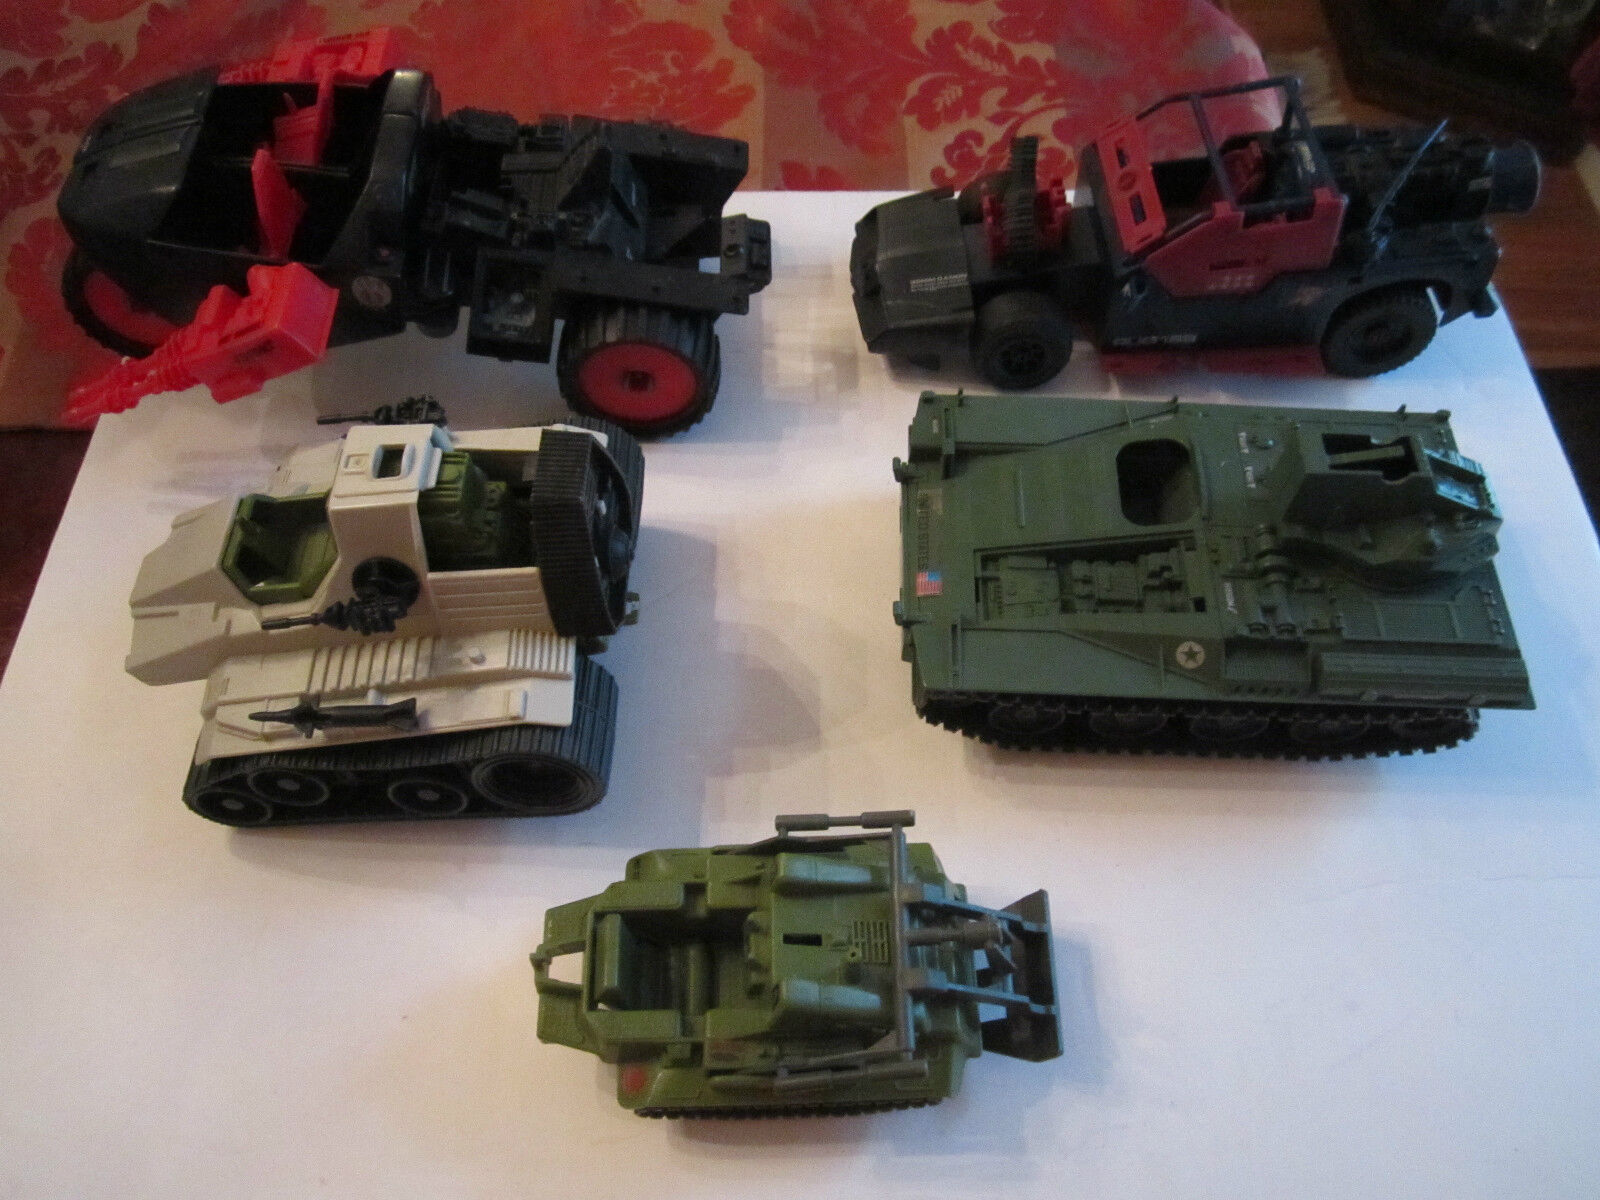 LOT OF 5 1980'S HASBRO MILITARY VEHICLES - LARGEST VEHICLE IS 12  LONG